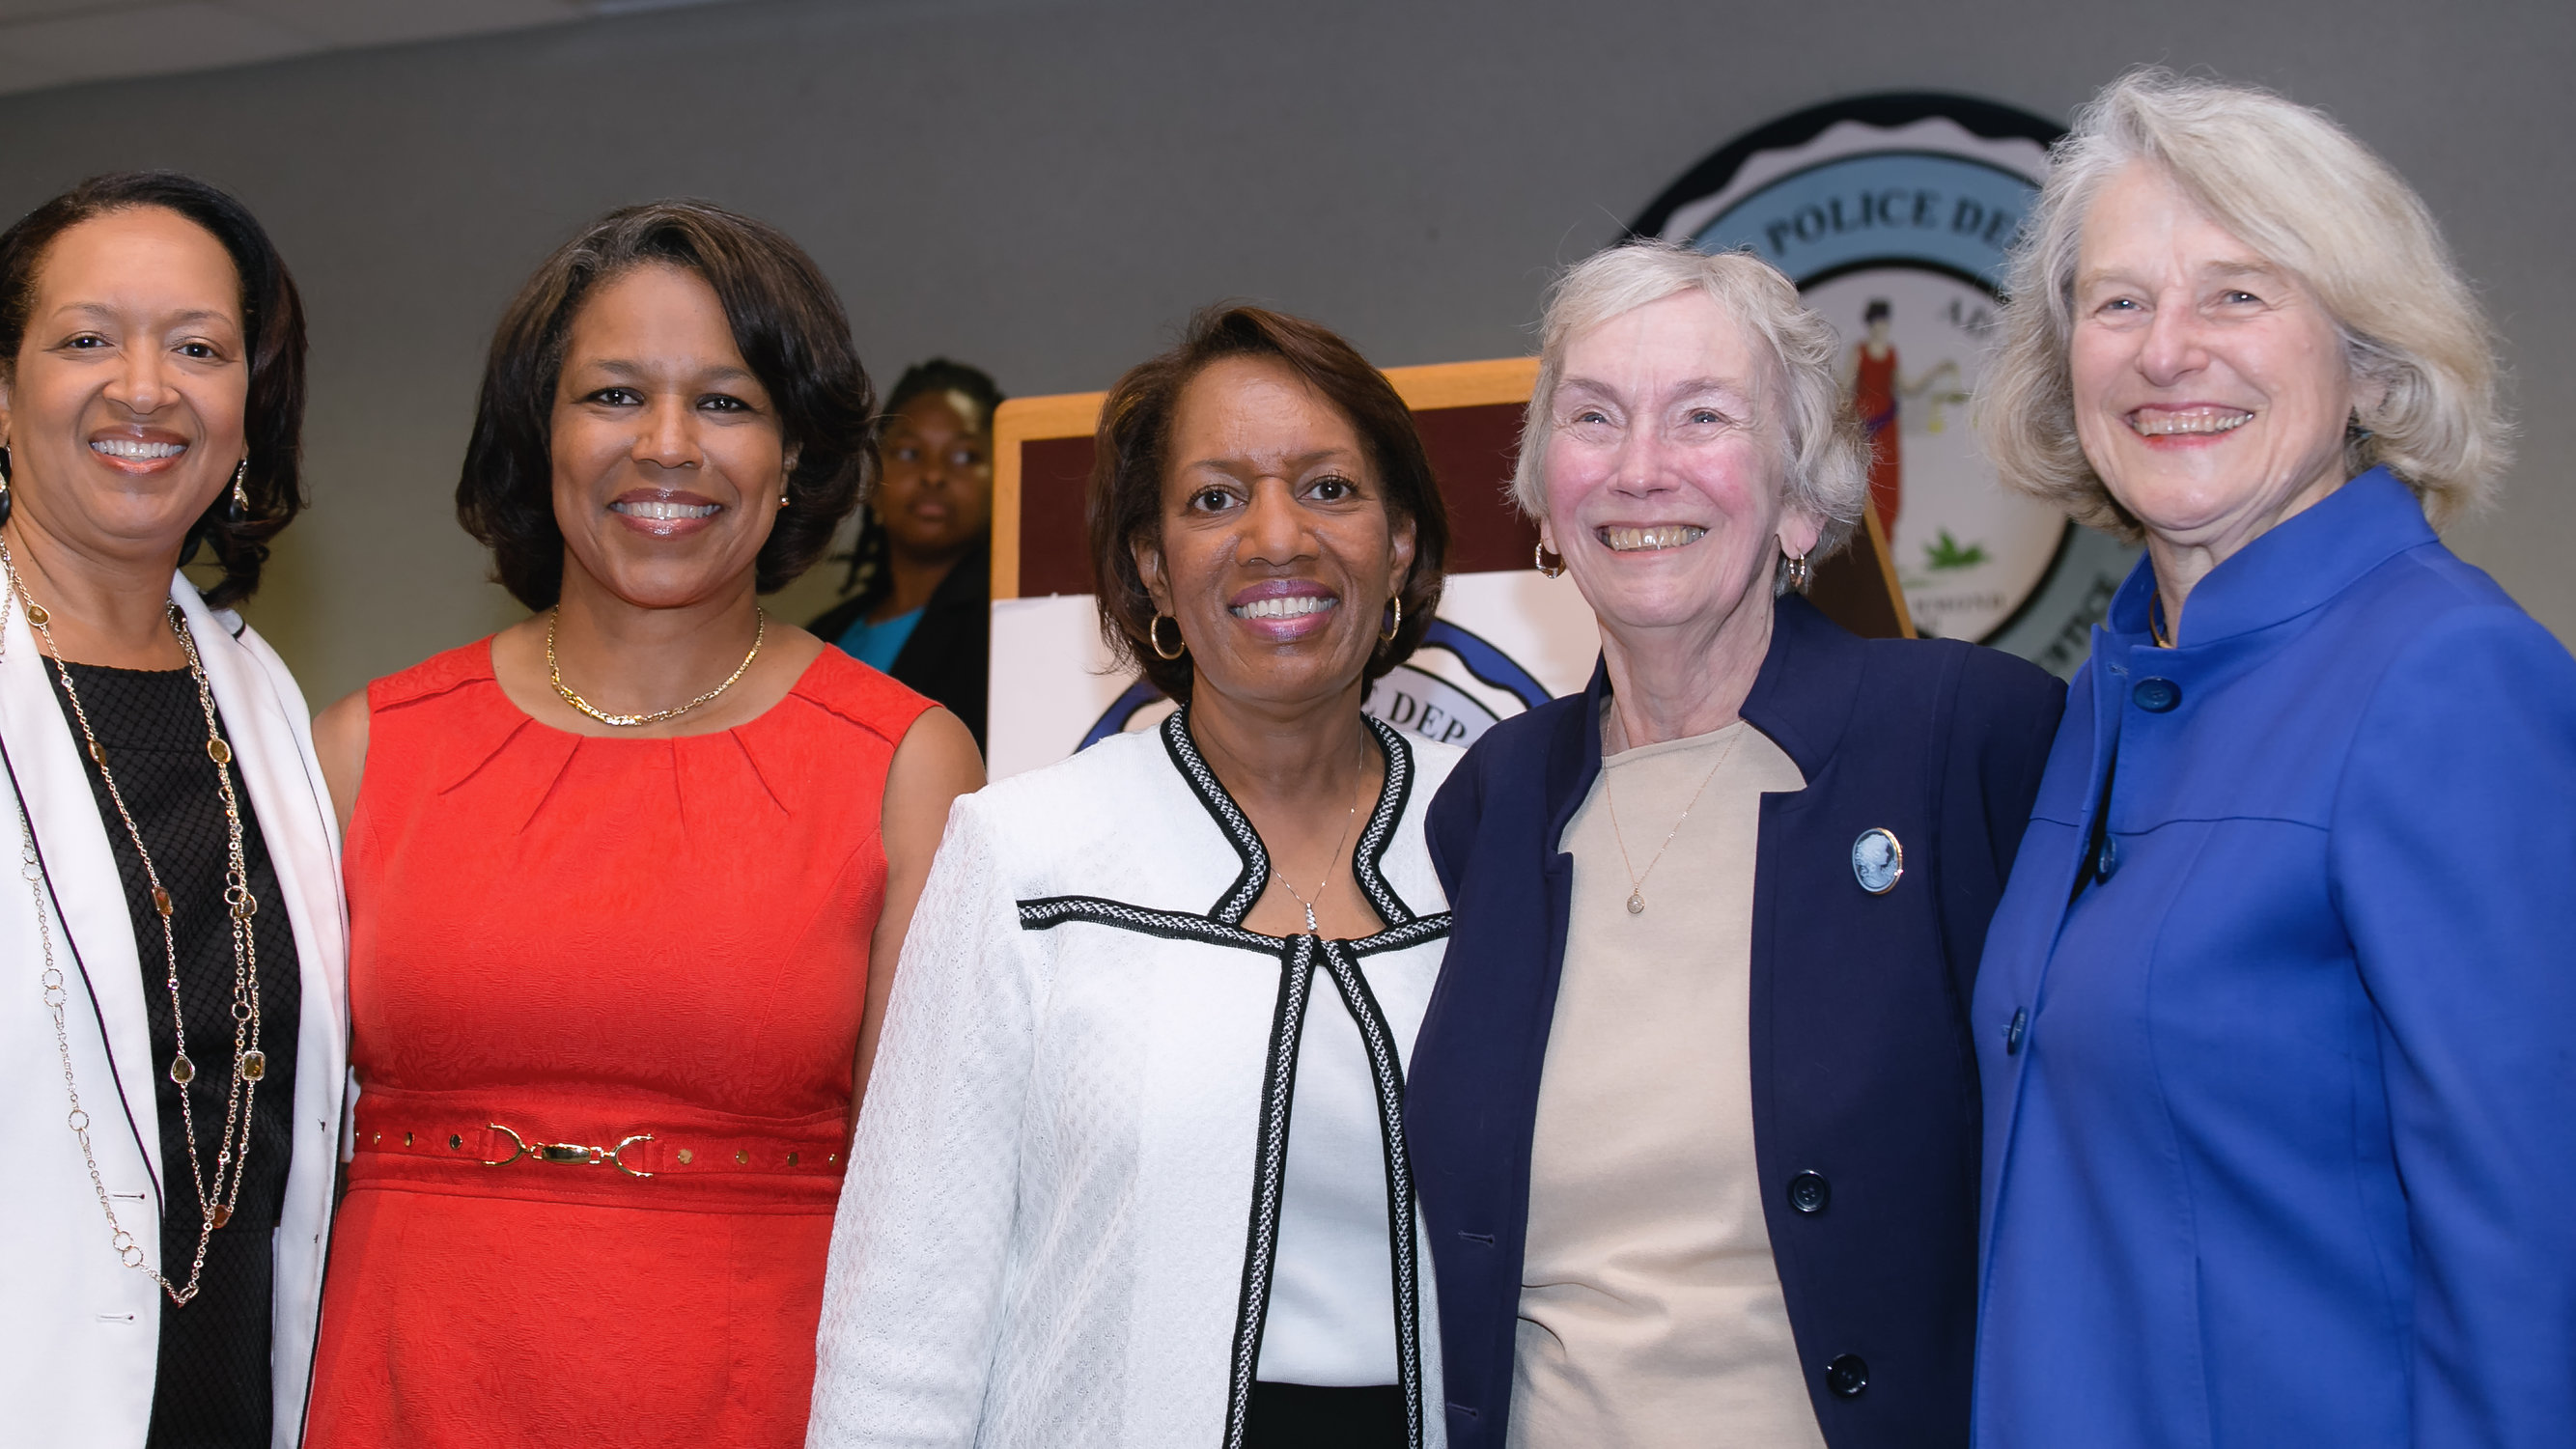 Richmond Juvenile and Domestic Relations Chief Judge Angela Roberts (second from left), Richmond Adult Drug Treatment Court Graduation Ceremony, June 20, 2014. Standing with Roberts, left to right: Richmond General District Court Judge Joi Taylor, Richmond Circuit Court Judge Margaret Spencer, RIchmond Juvenile and Domestic Relations Judge Audrey Franks, and Delegate Betsy Carr. Photo by/courtesy of Ava Reaves.